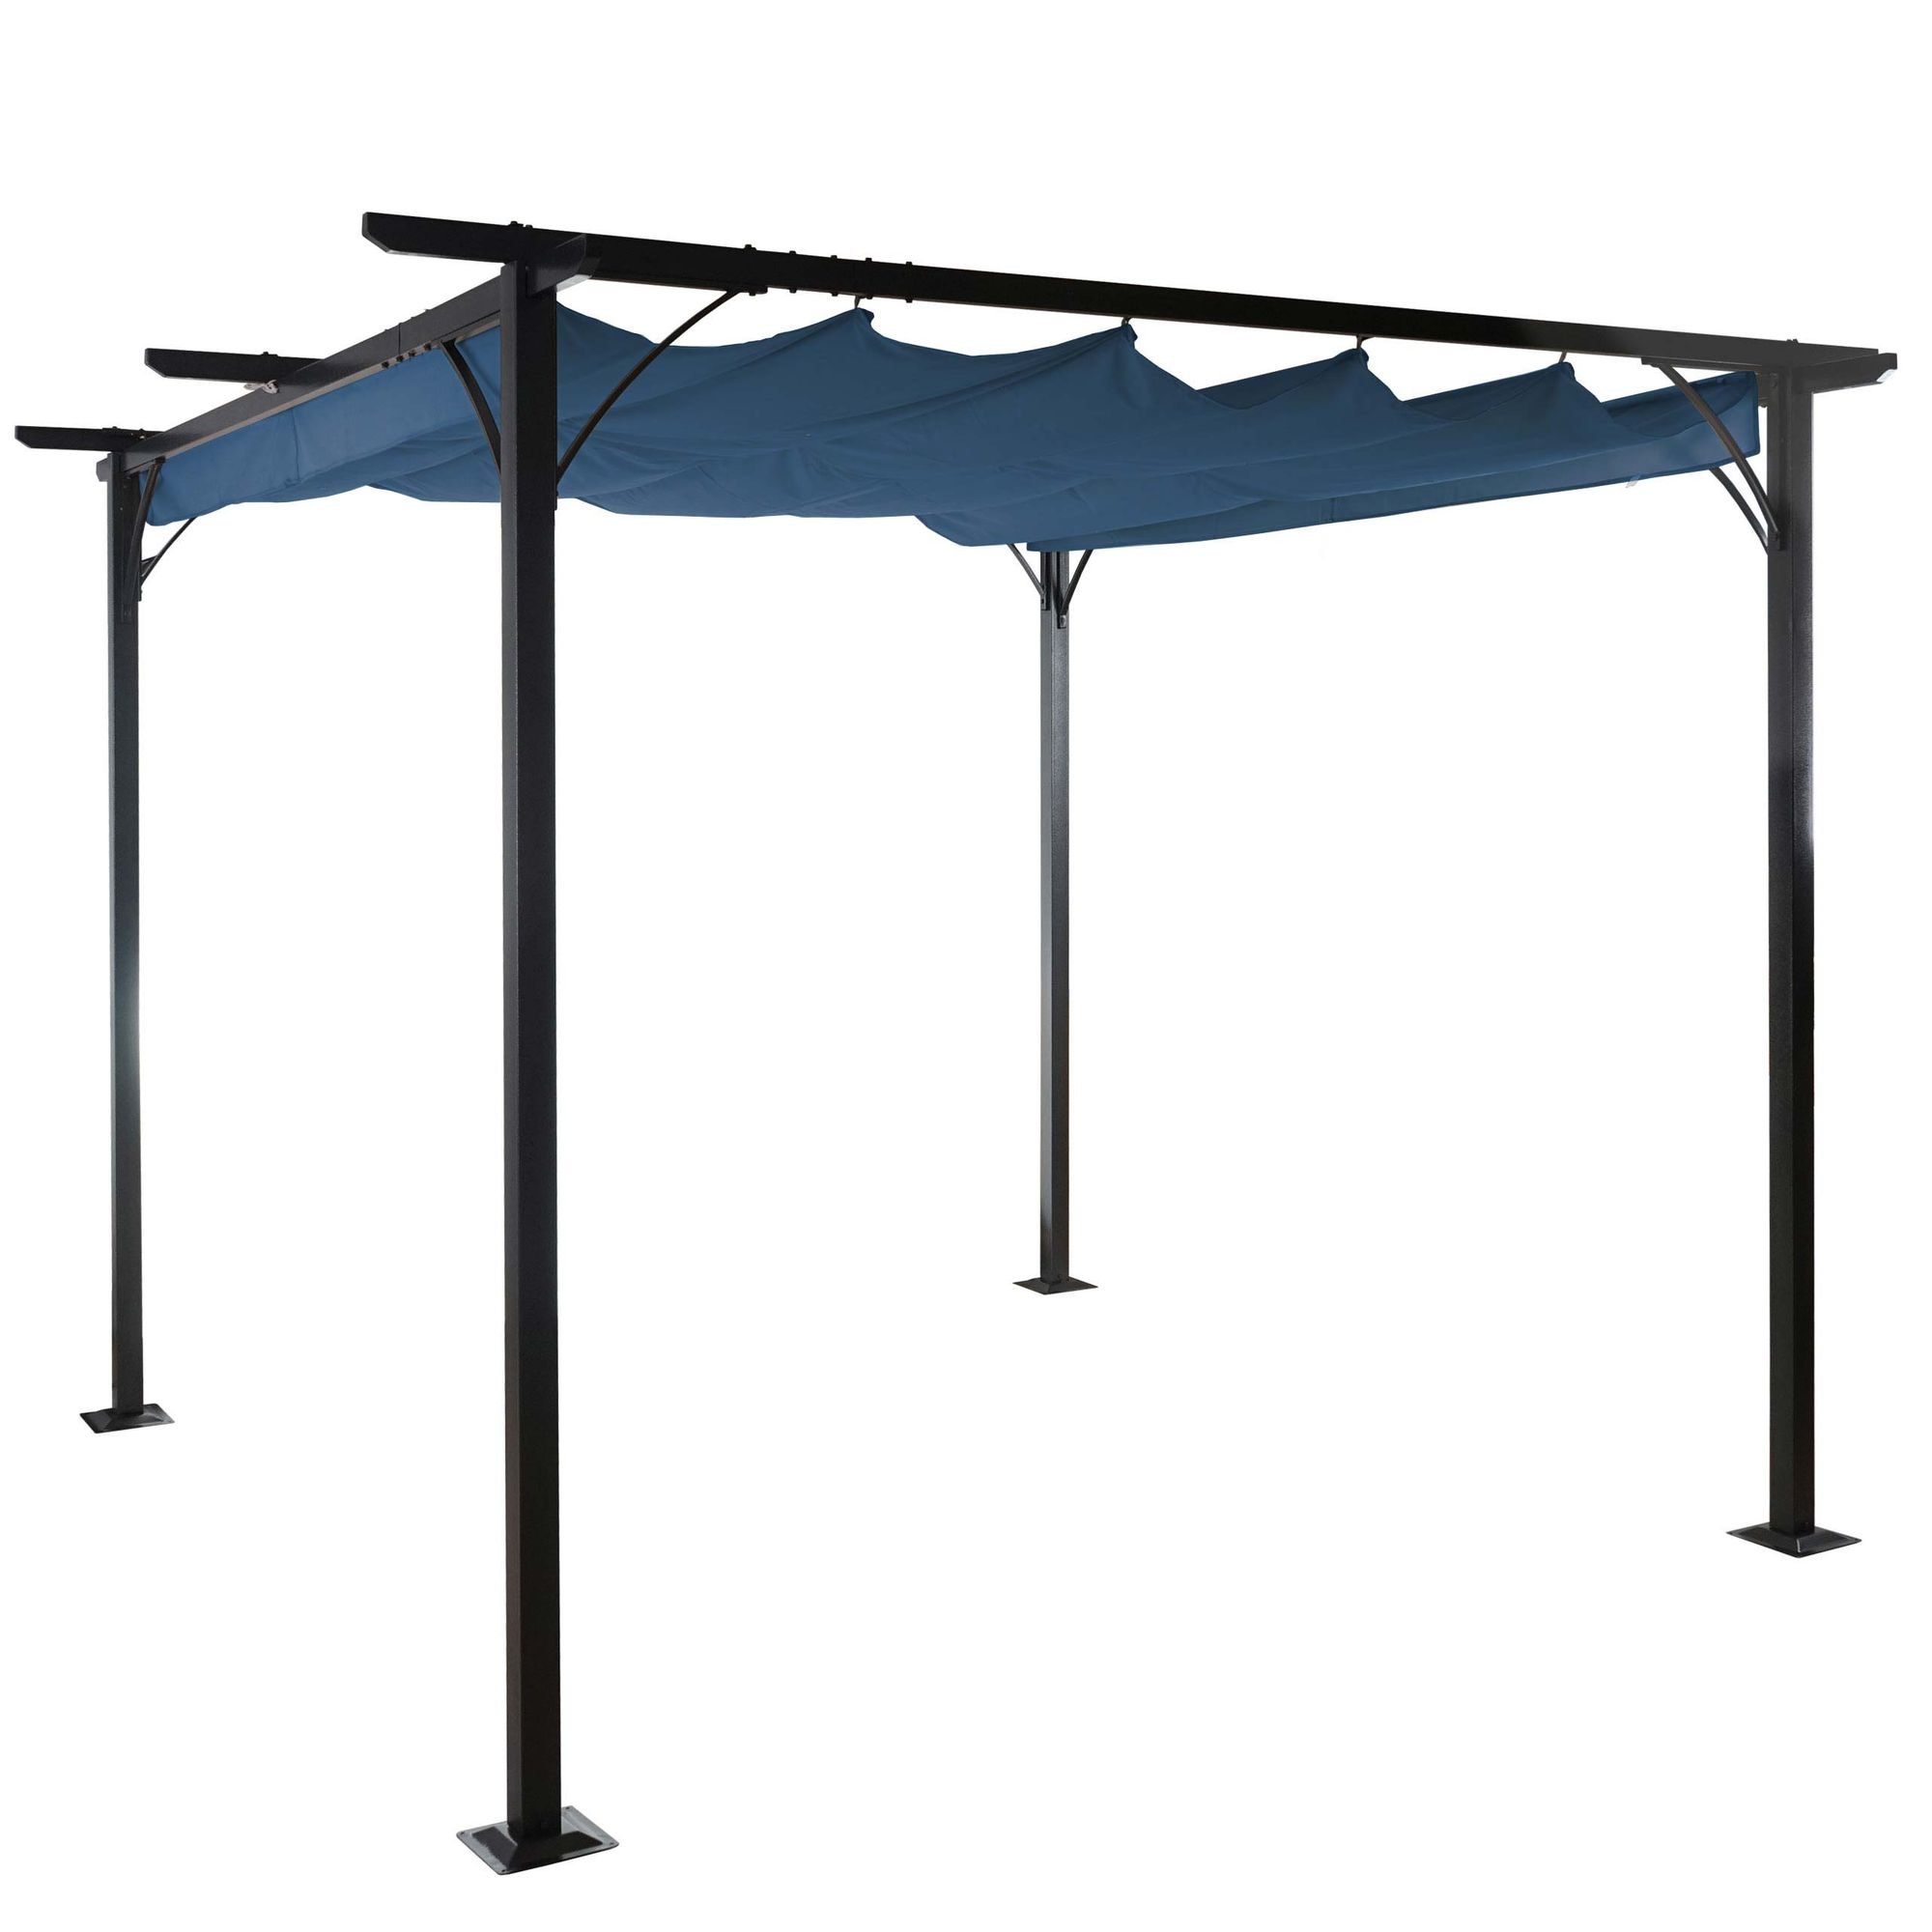 pergola garten pavillon stabiles 6cm gestell. Black Bedroom Furniture Sets. Home Design Ideas